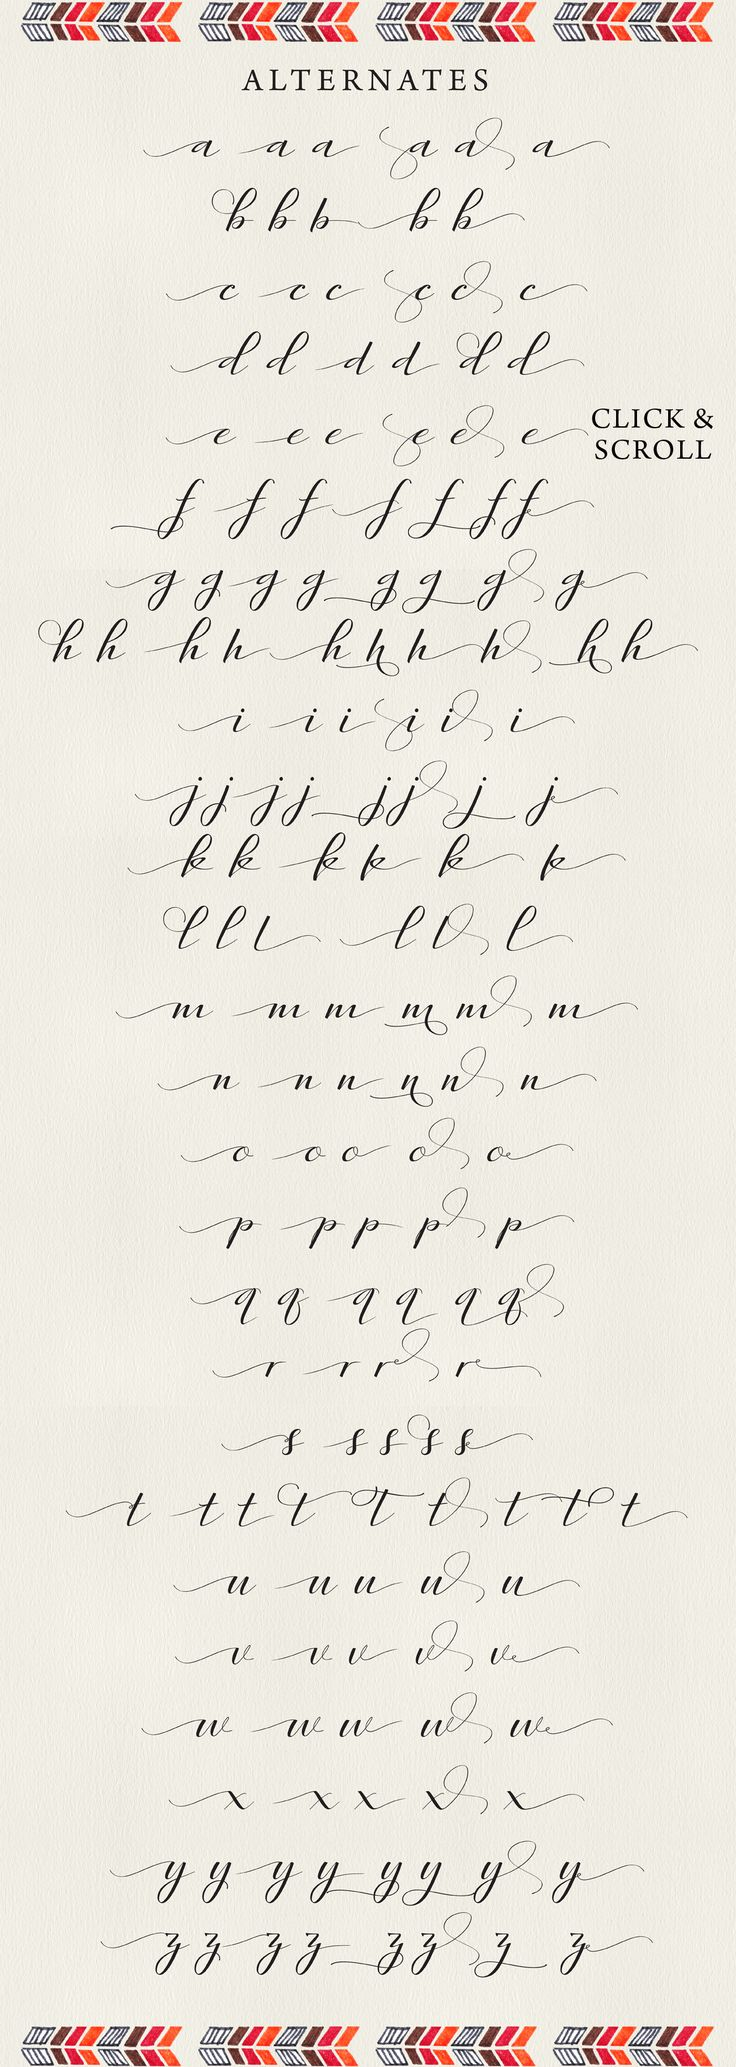 Rambies - Handwritten Calligraphy by Get Studio on Creative Market                                                                                                                                                                                 More